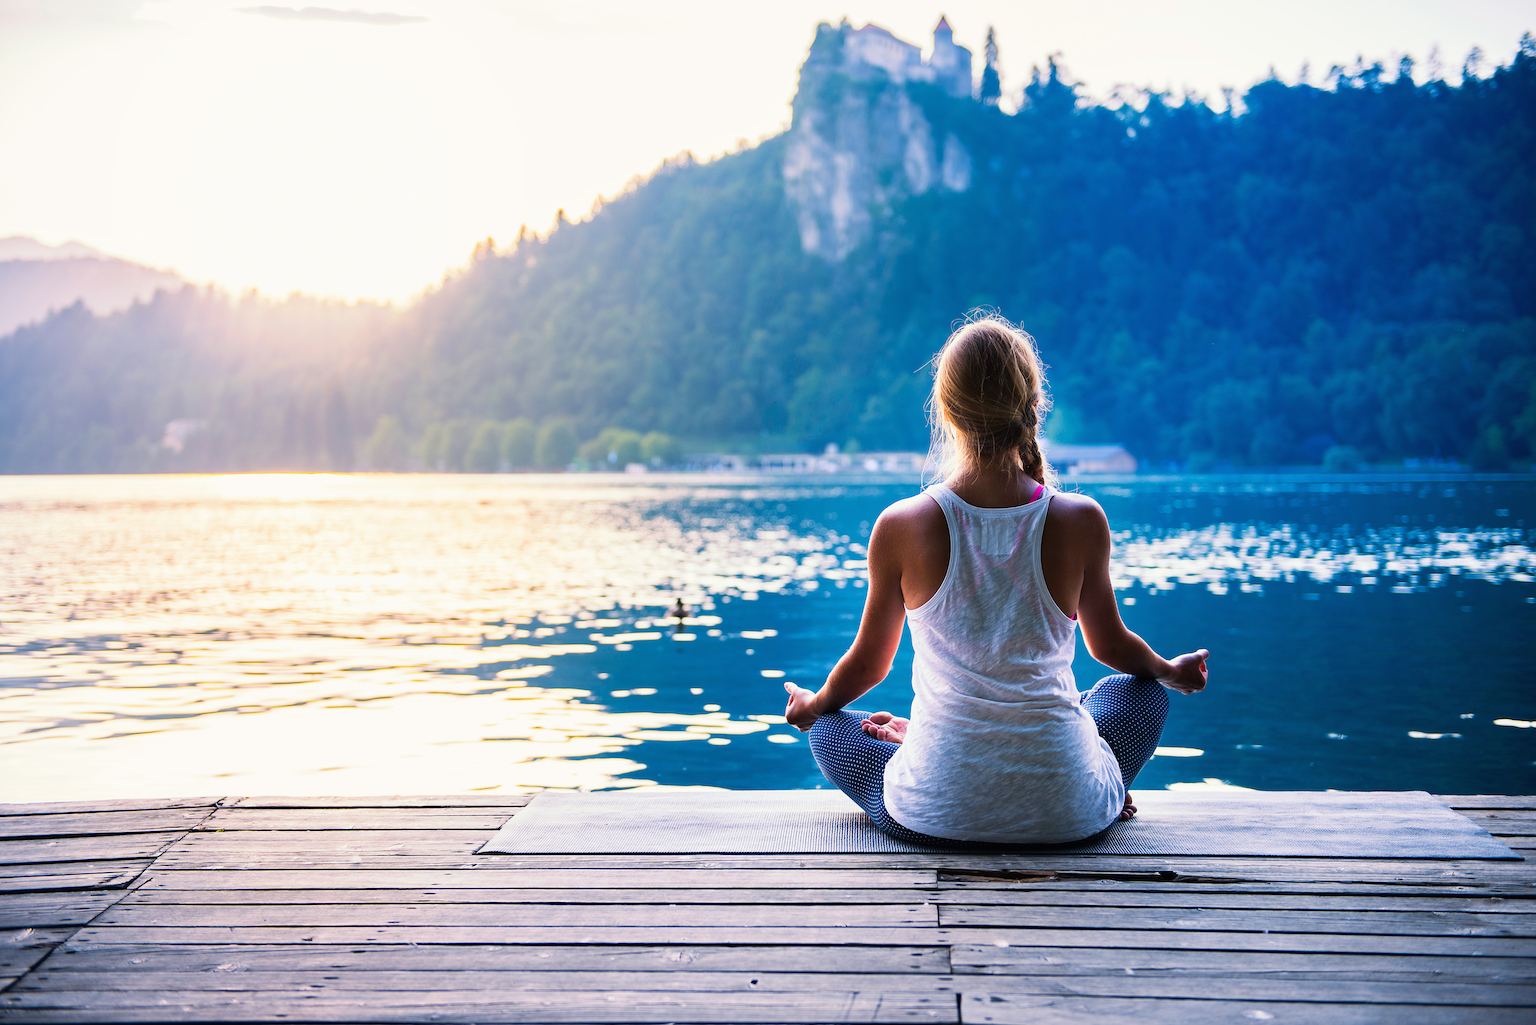 An extensive, seven-year study has revealed that consistent meditation over the course of a lifetime may help a person maintain attentiveness and reduce the extent of cognitive decline.